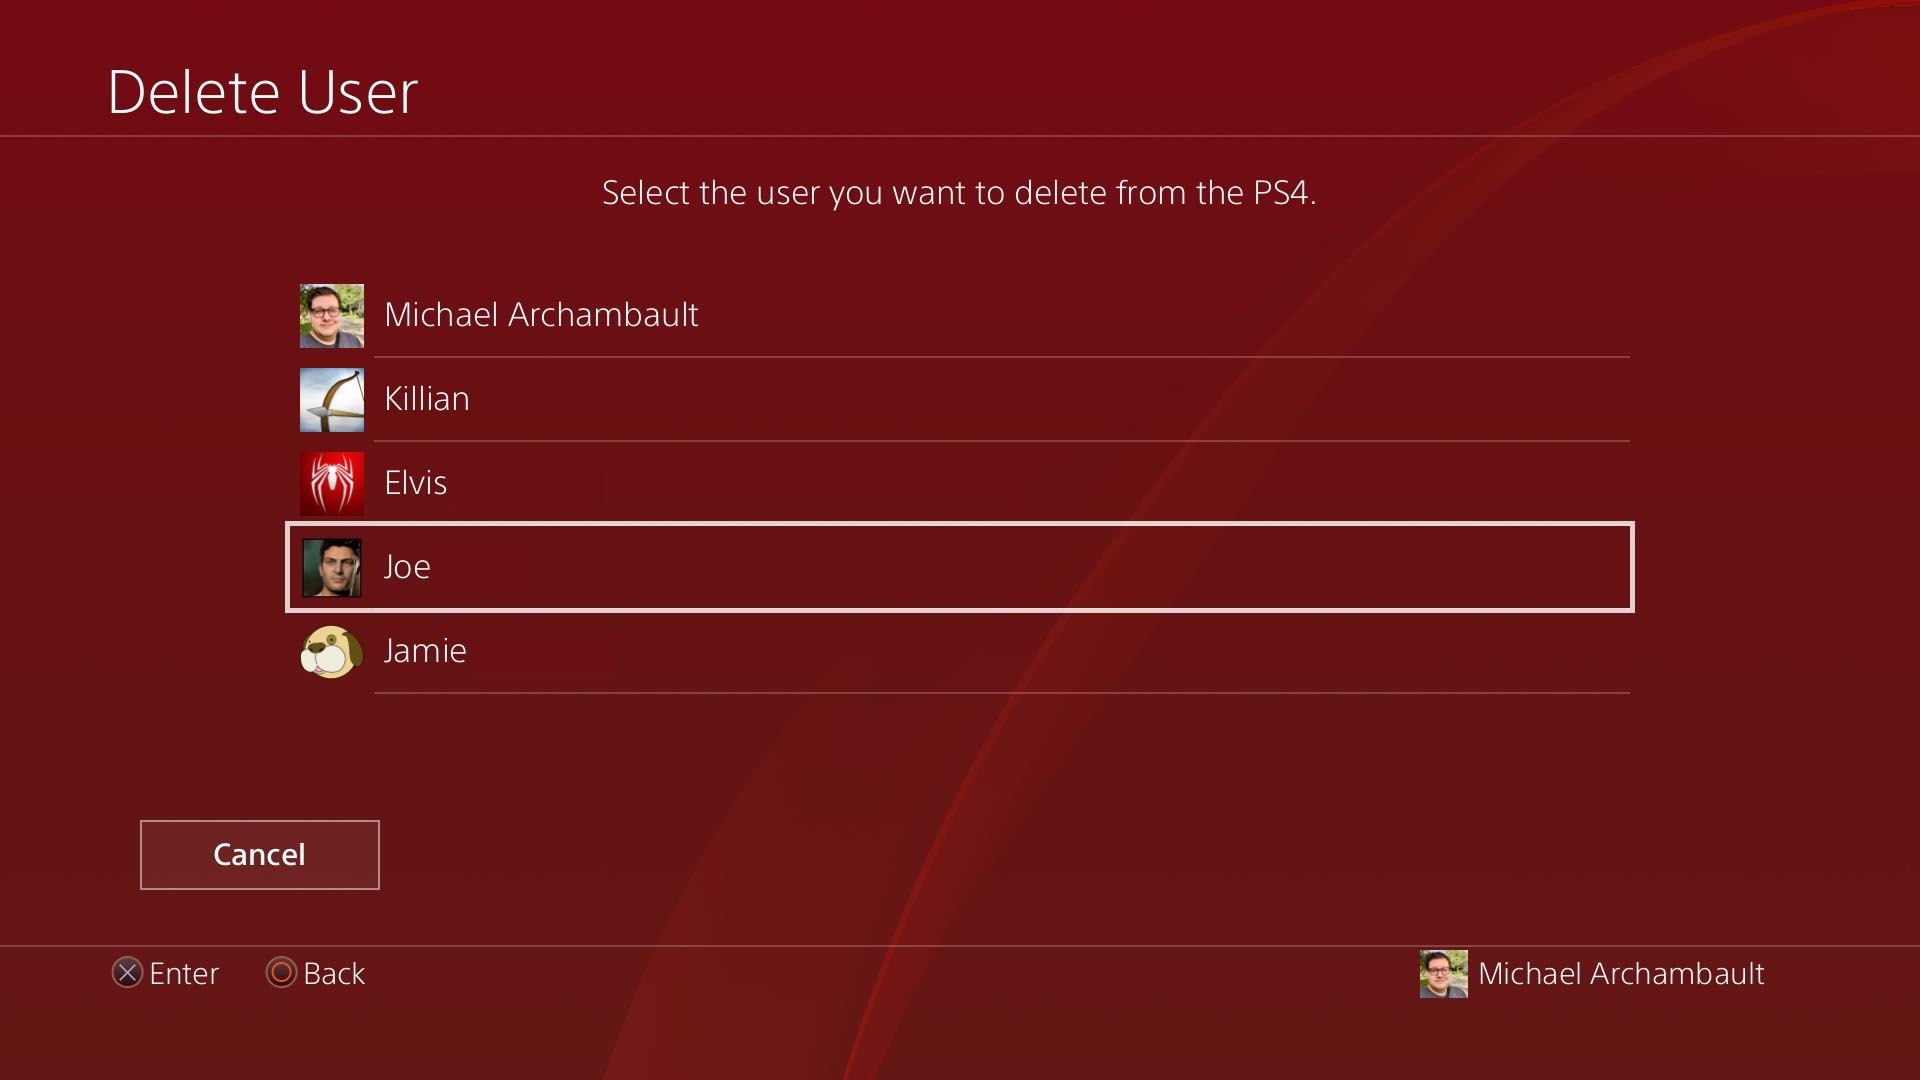 How to Delete User on PS4